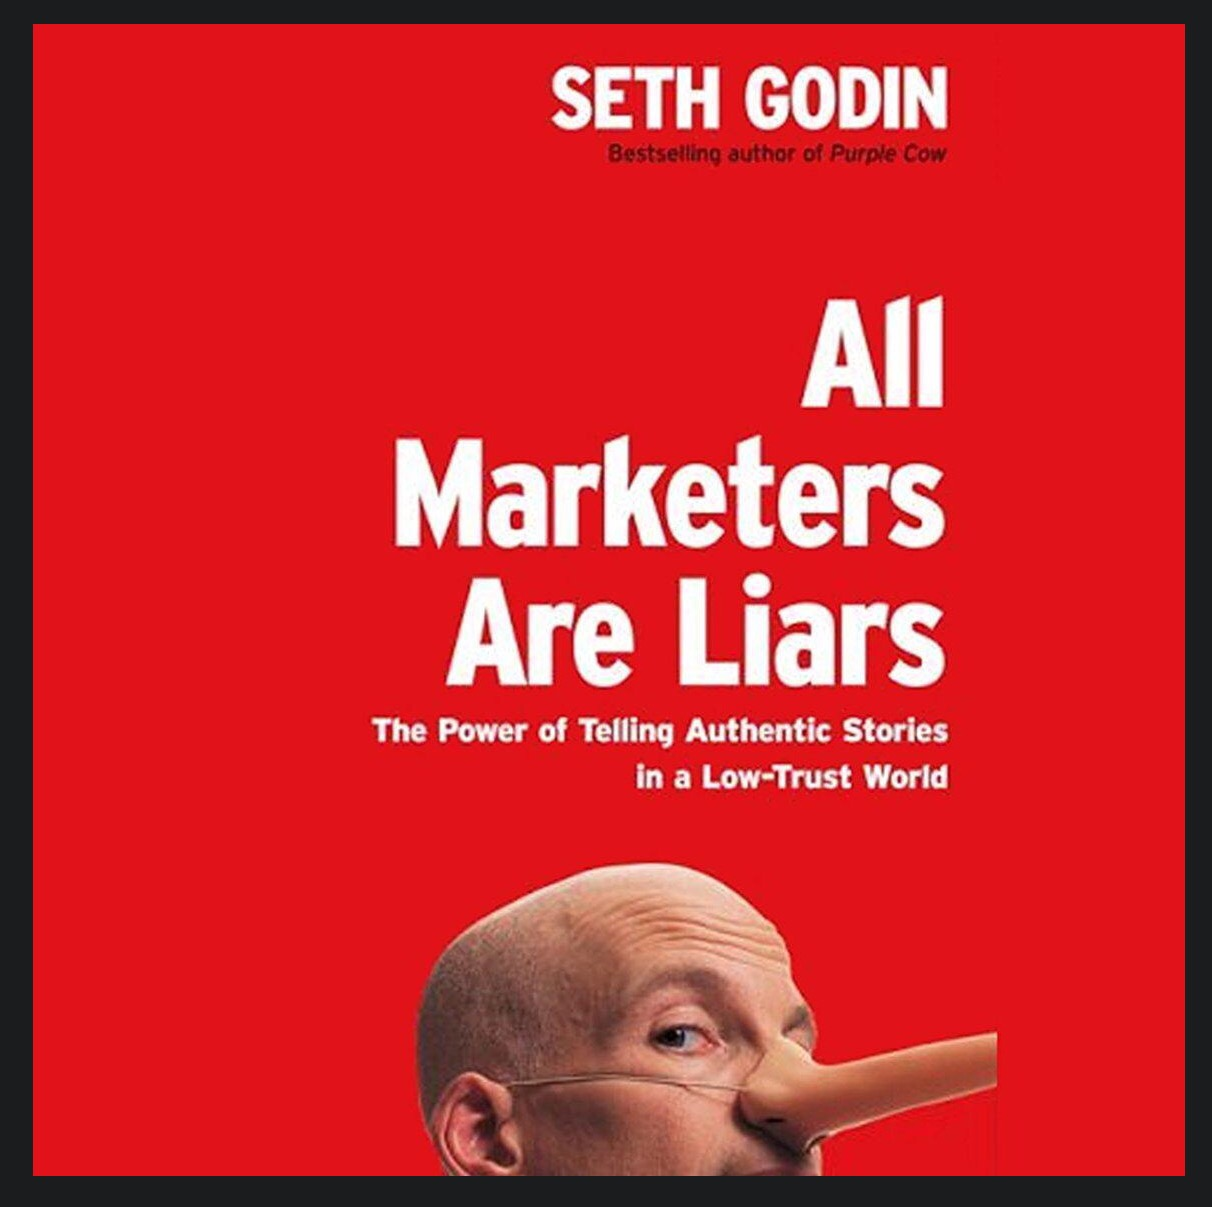 are all marketers liars and storytellers All marketers are liars blog about seth's web pages the dip blog authentic and subject to scrutiny all marketers are storytellers, only the losers are liars published today at amazon and bn posted by seth godin on november 11, 2009 it's not just marketers and politicians who are.